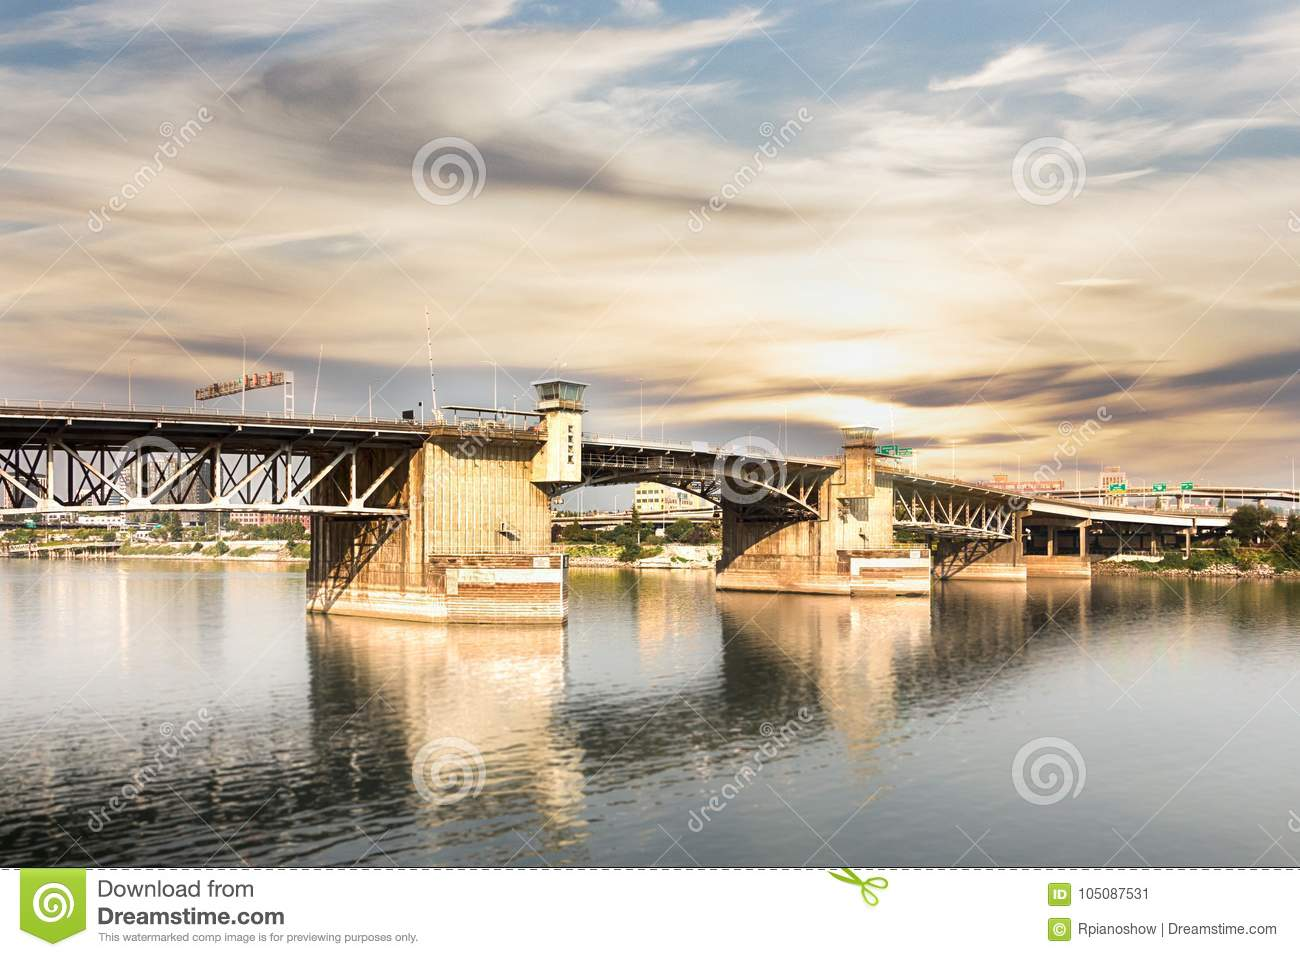 The Burnside Bridge in Portland.